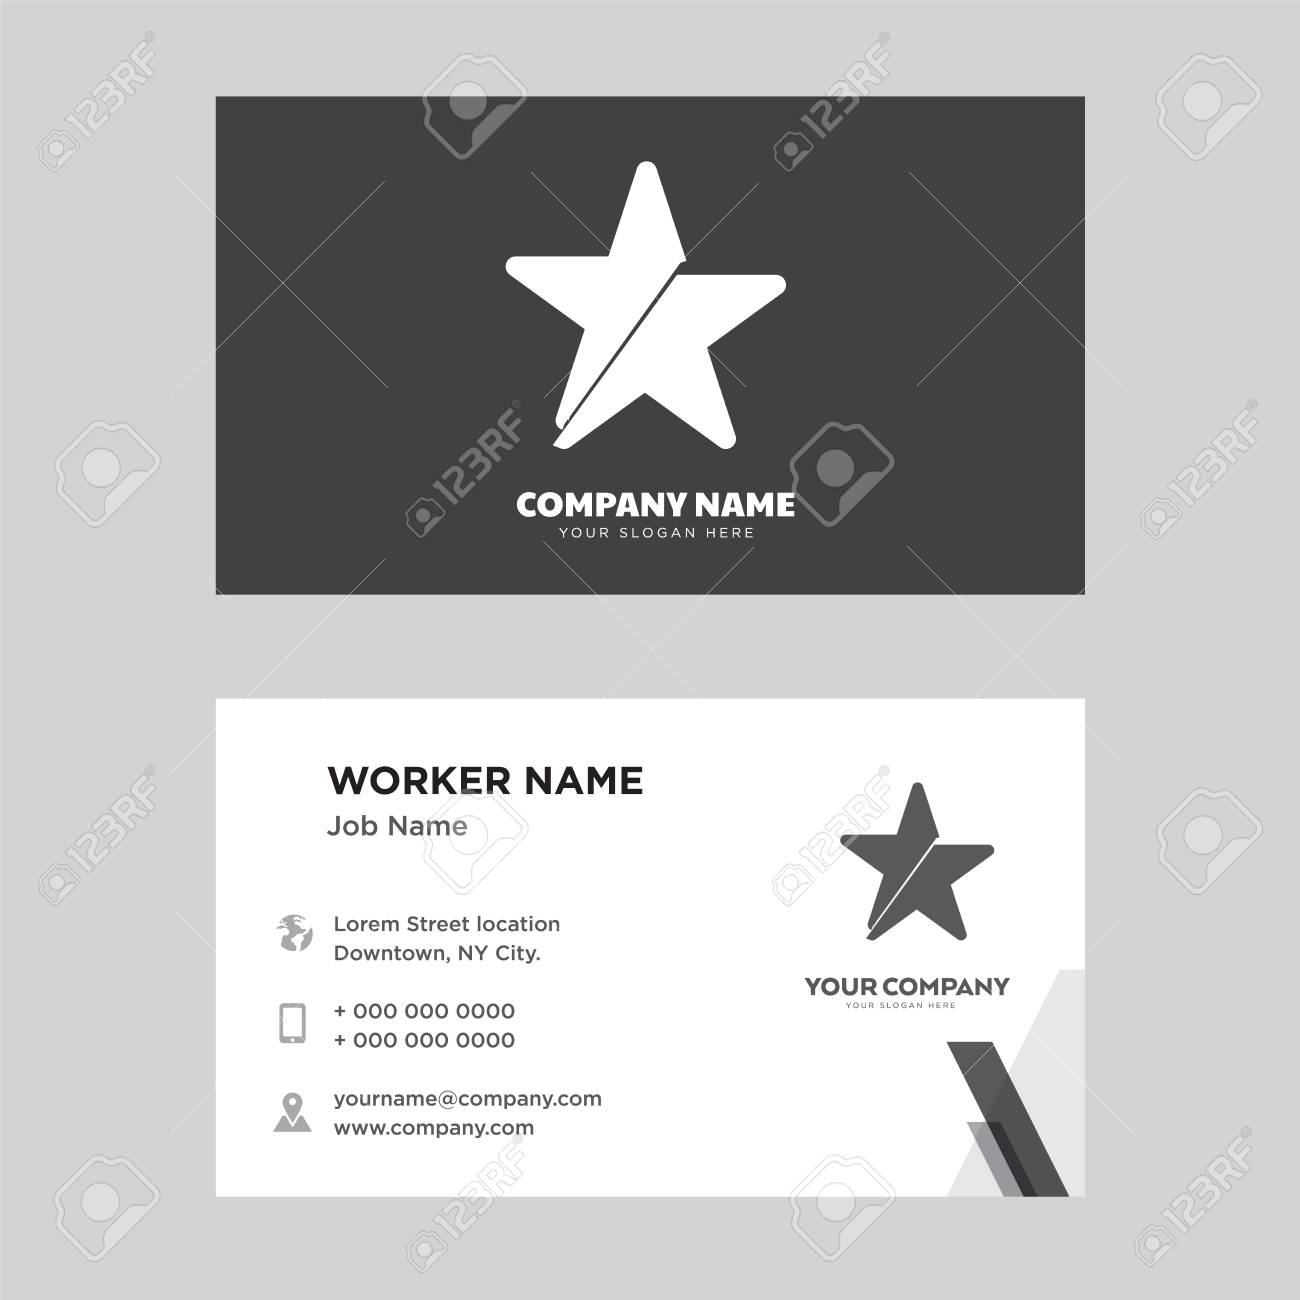 Star business card design template visiting for your company star business card design template visiting for your company modern horizontal identity card vector reheart Images